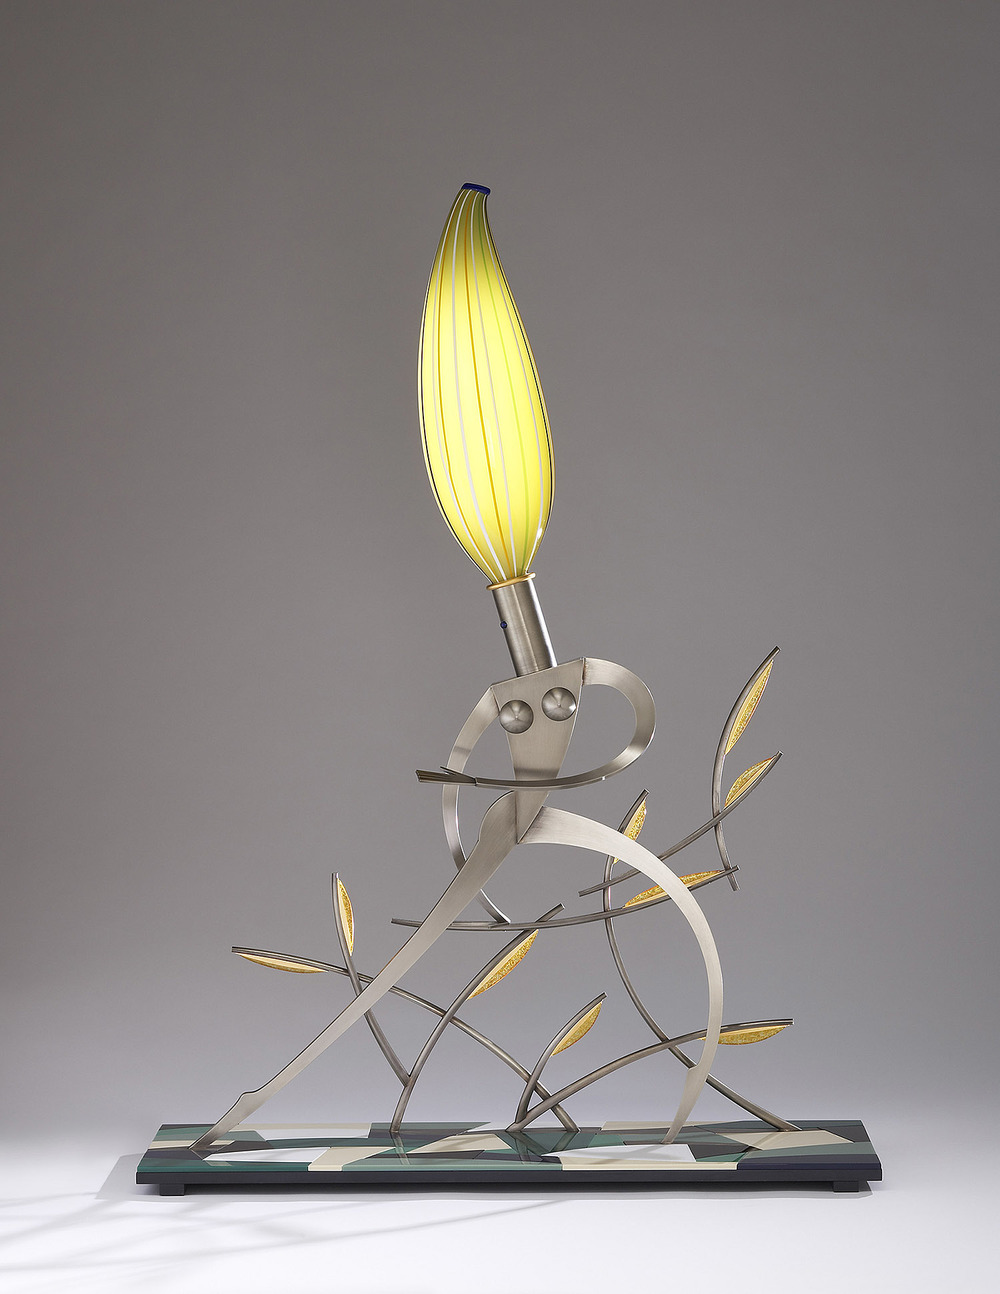 Nude Looking Back   2007. Blown glass, nickel and gold-plated bronze, aluminum, Vitrolite and lampworked glass. 44 x 32 x 11""